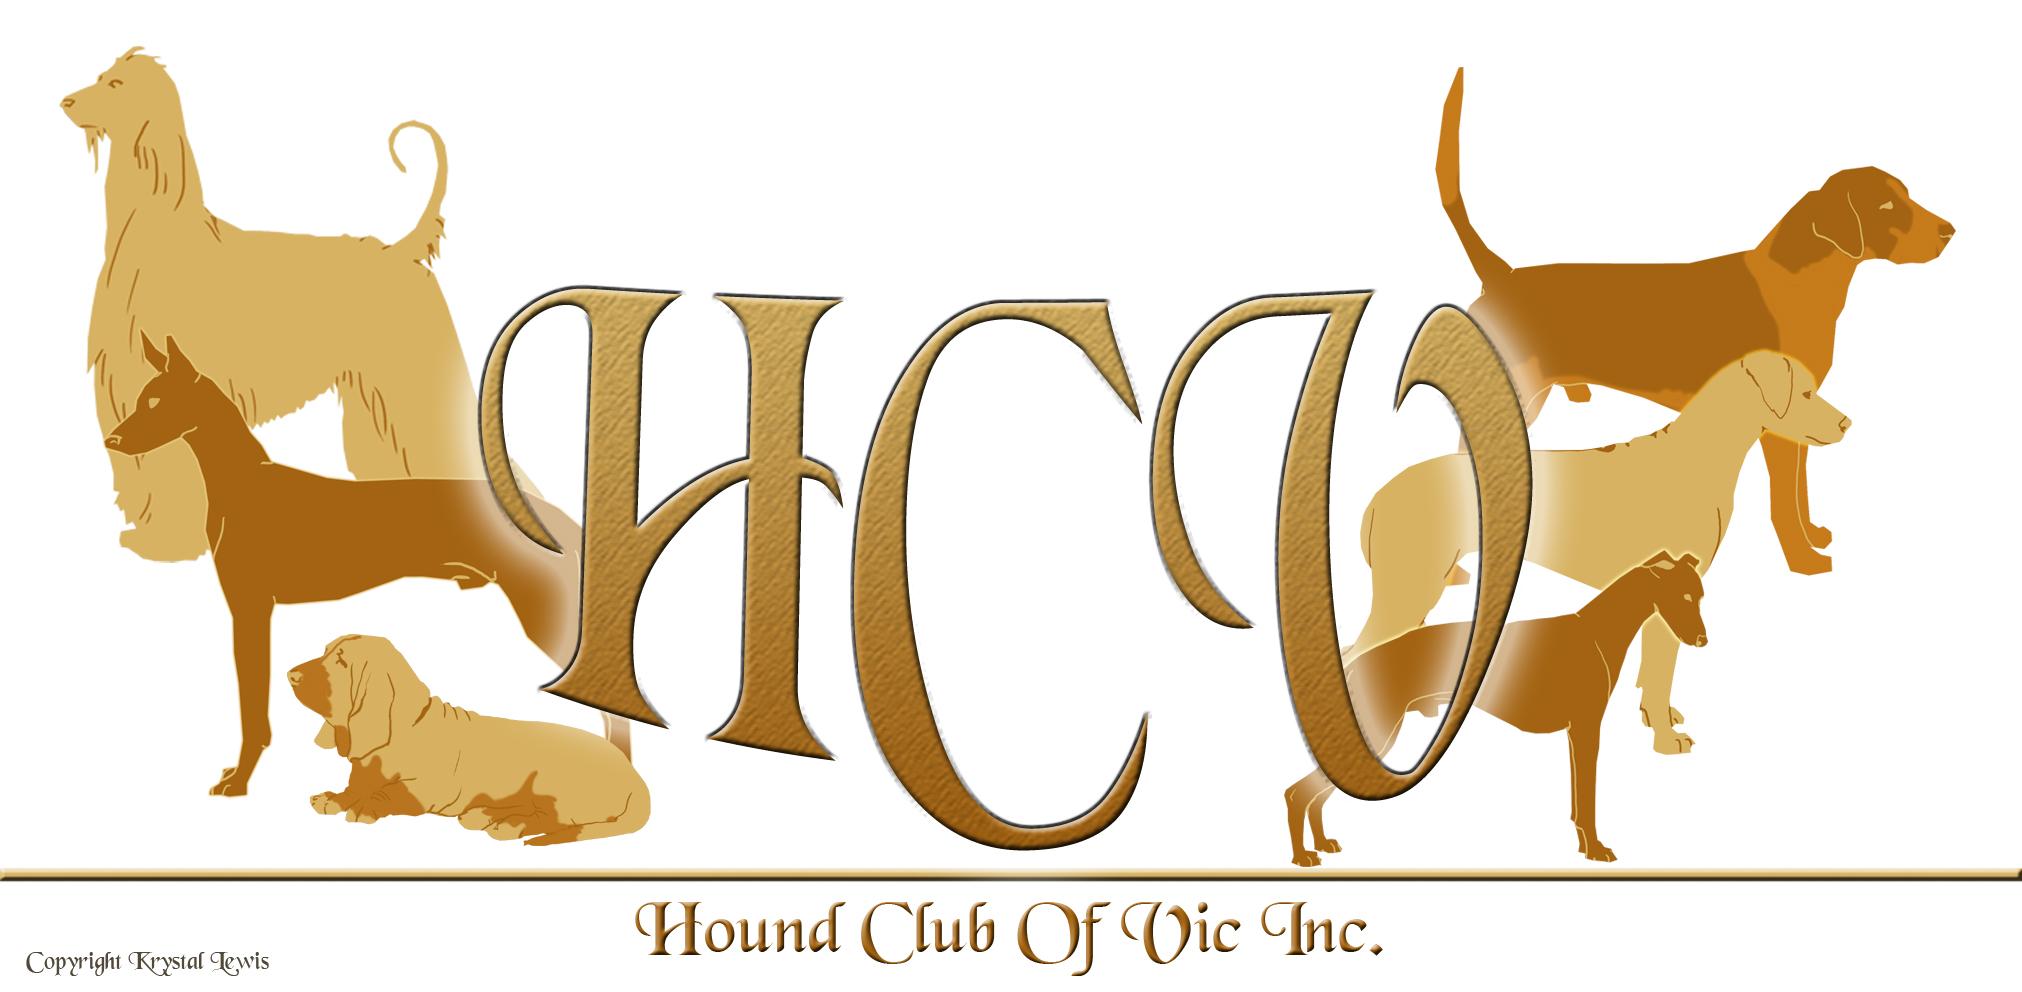 Hound Club of Victoria Inc